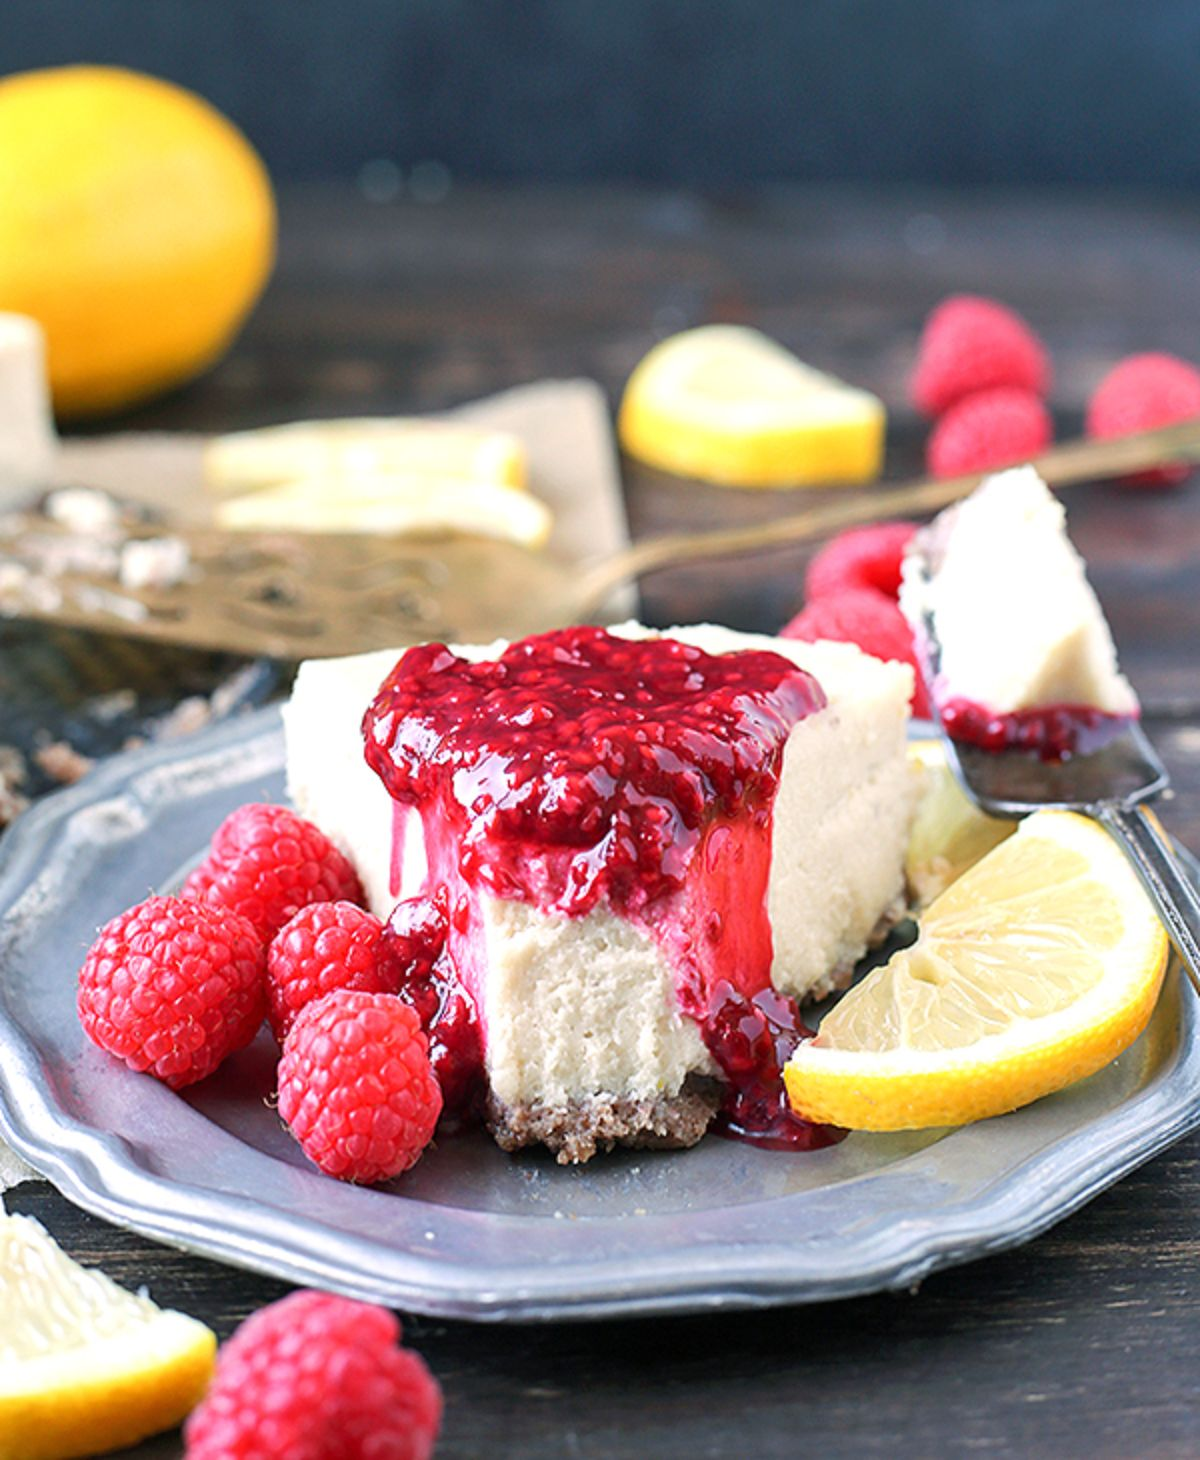 A blue plate with a segment of vanilla cheesecake drizzled with raspberry coulis and surrounded by lemon slices and fresh raspberries